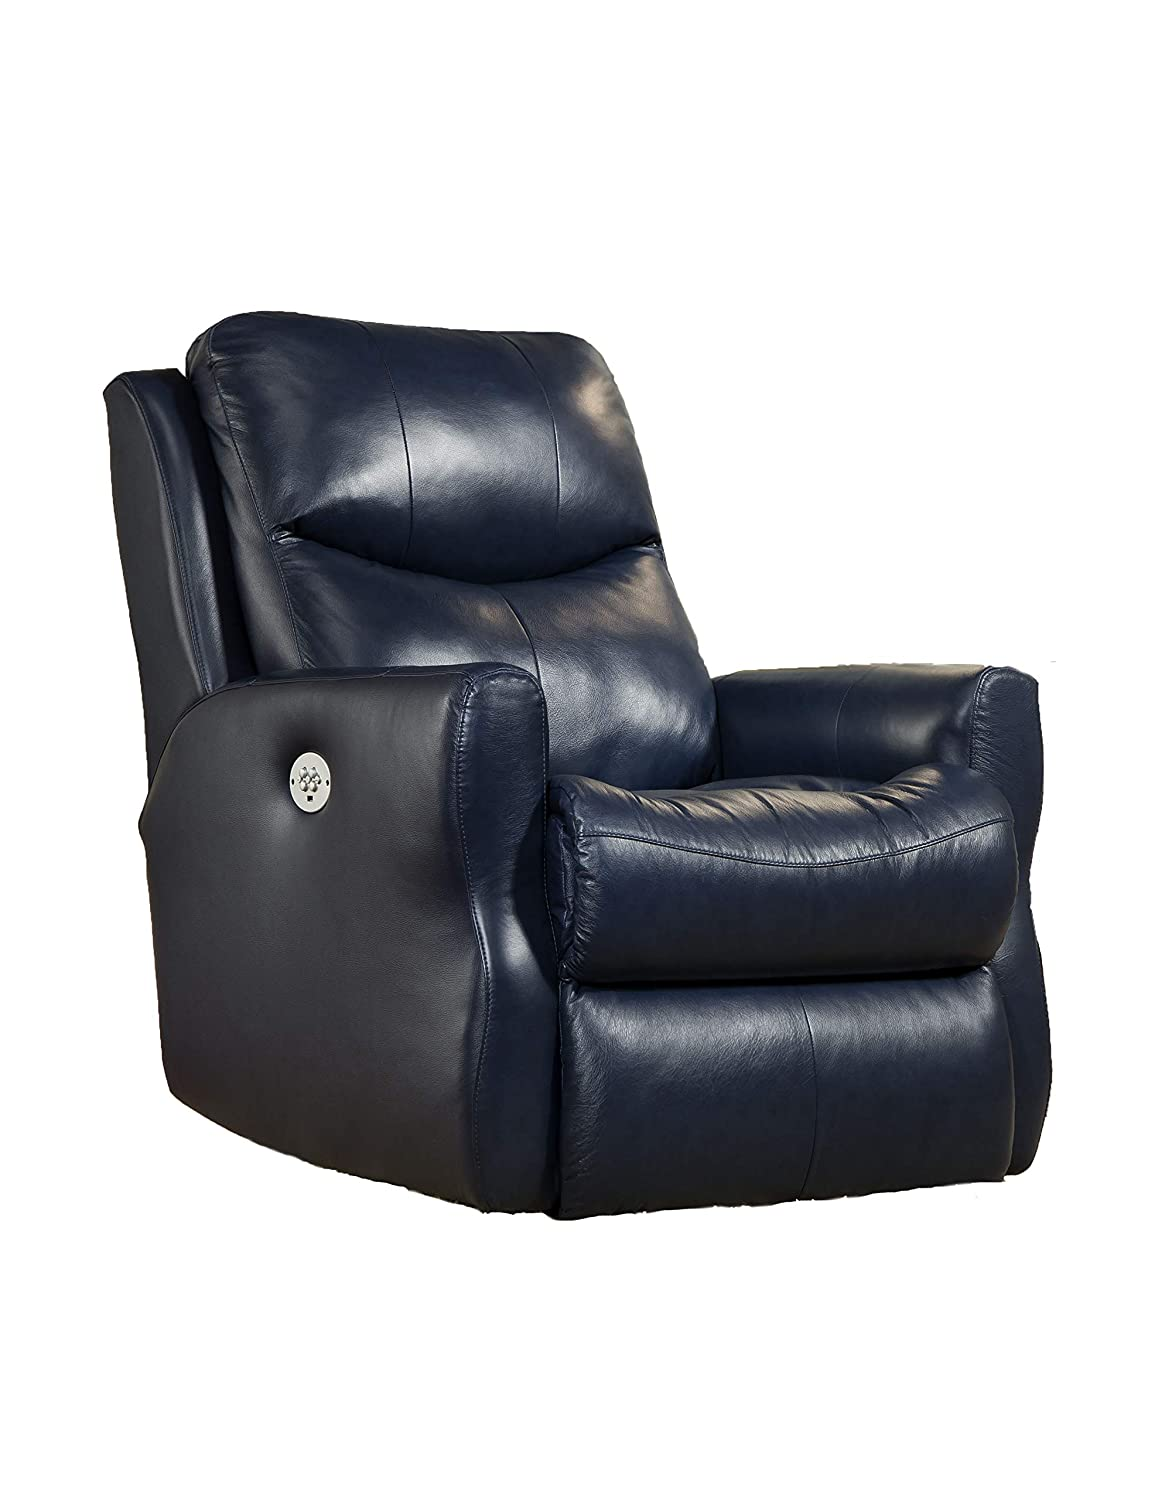 Southern Motion Rocker Recliner Review